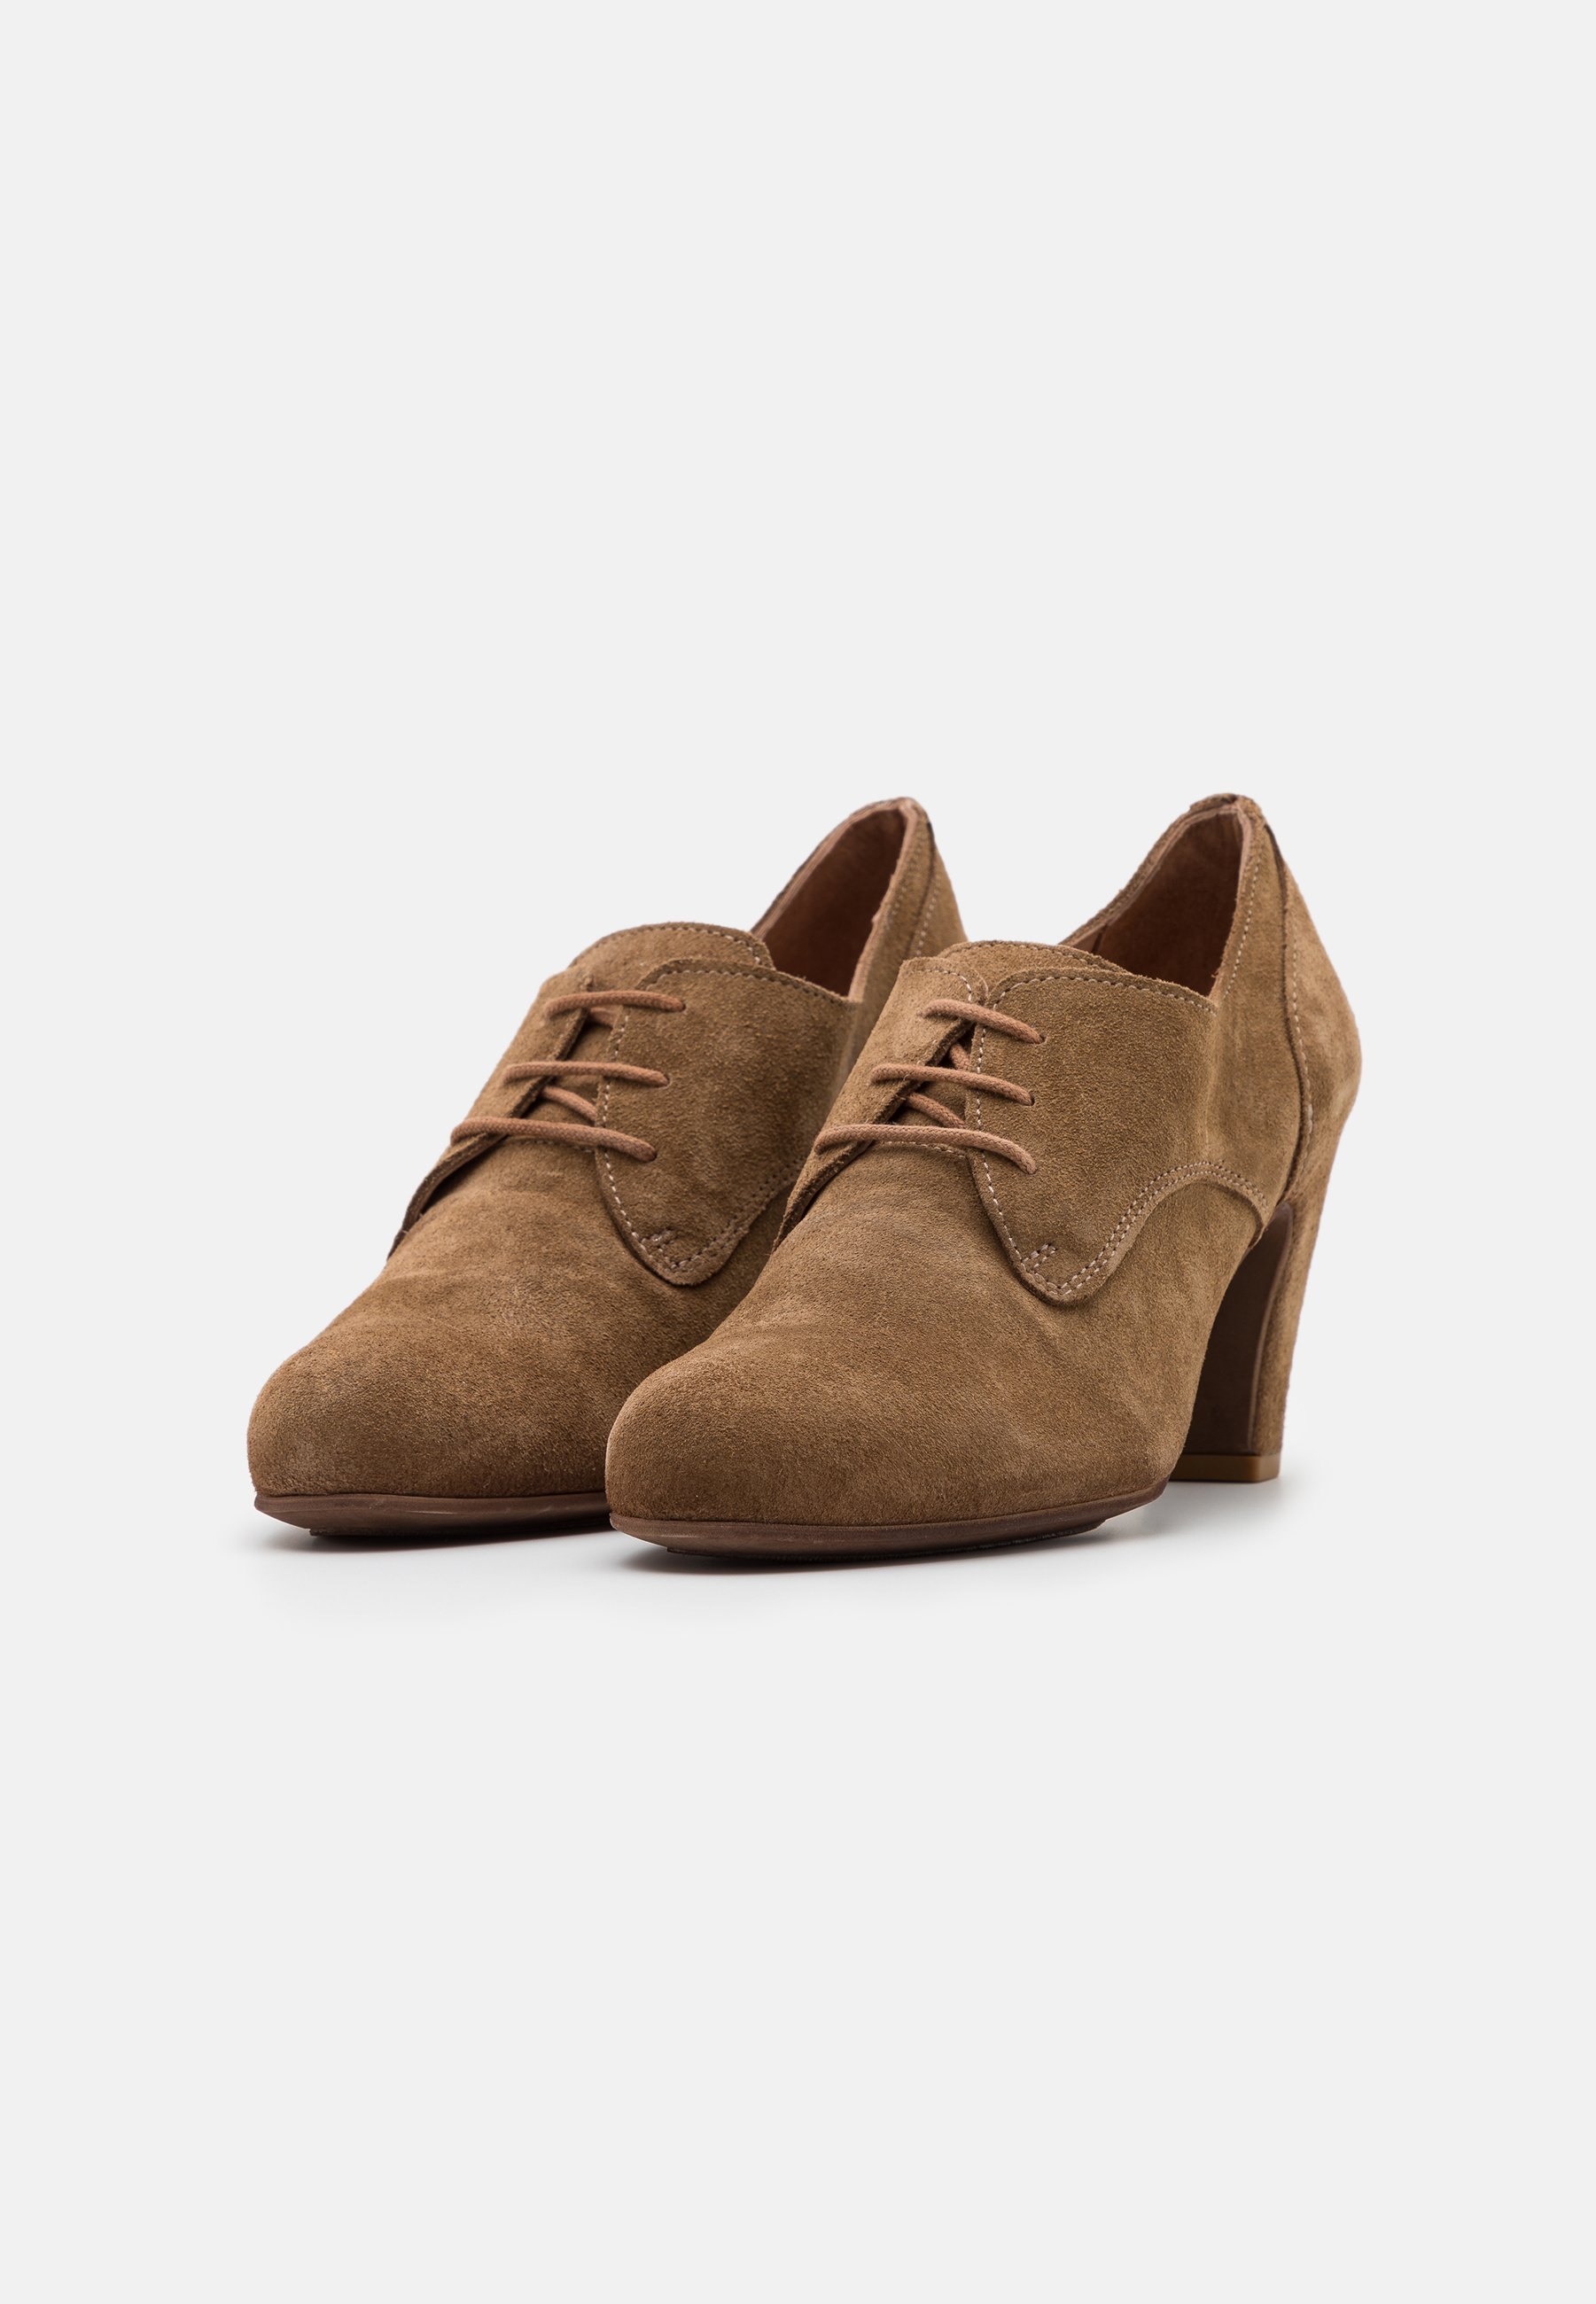 Women WILMA - Lace-up heels - marvin stone